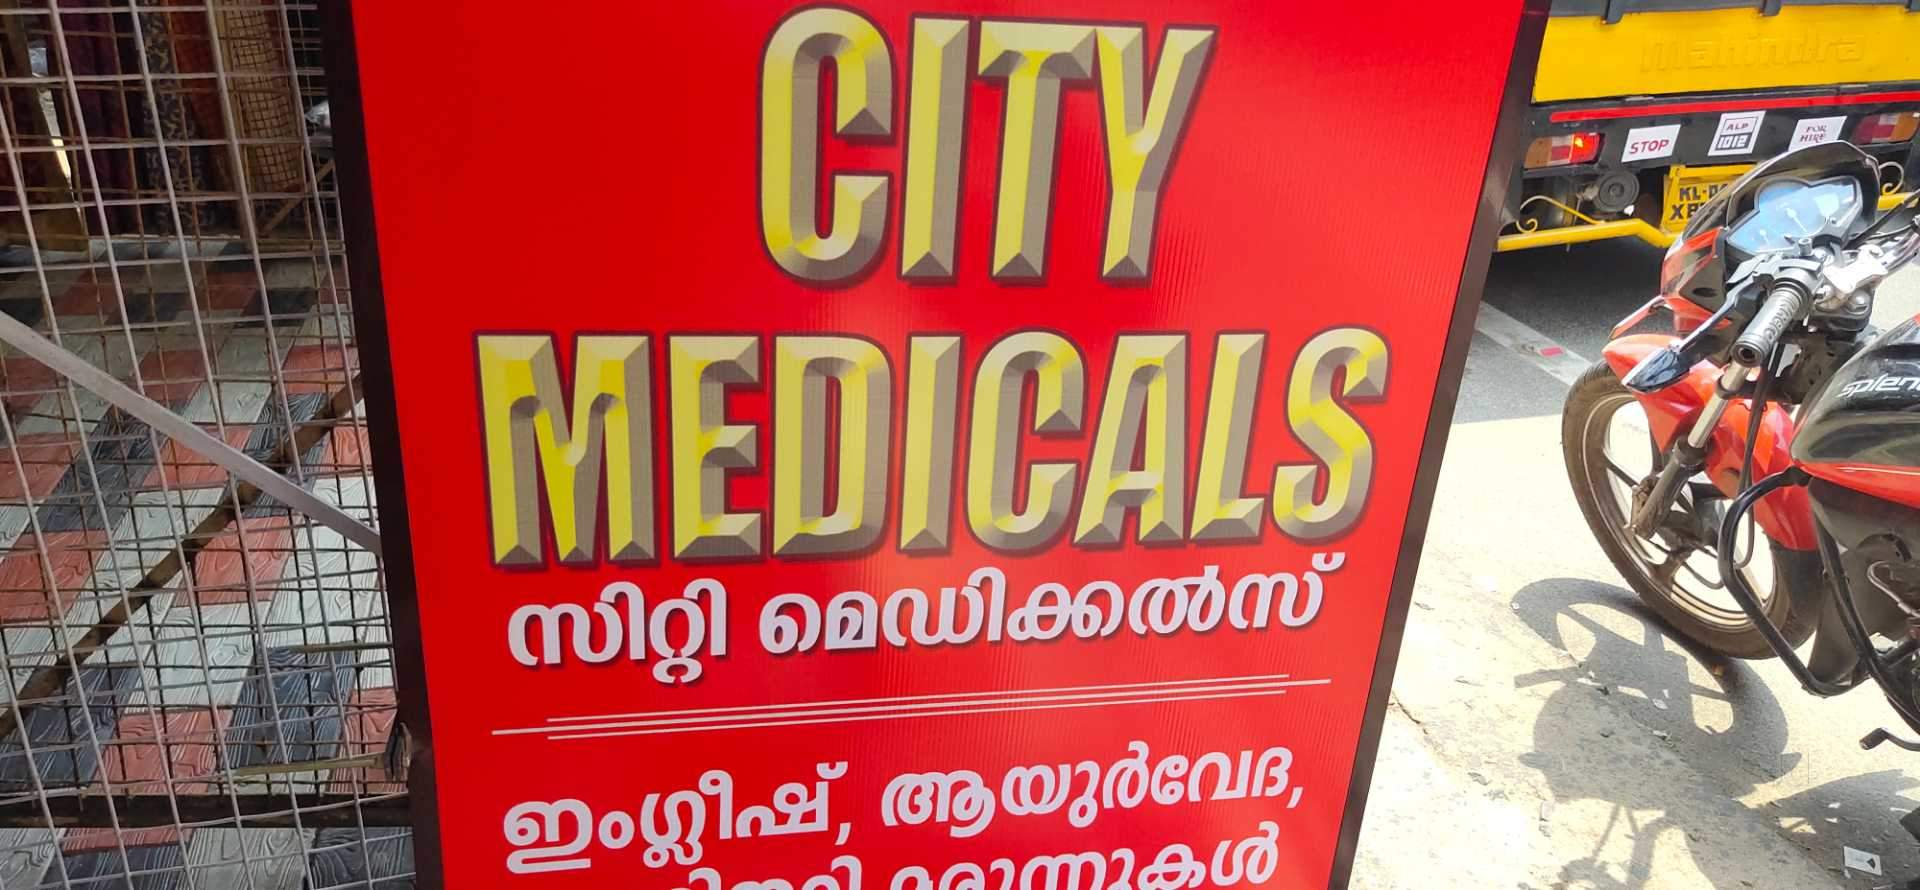 City Medicals, MEDICAL SHOP,  service in Mullakkal, Alappuzha